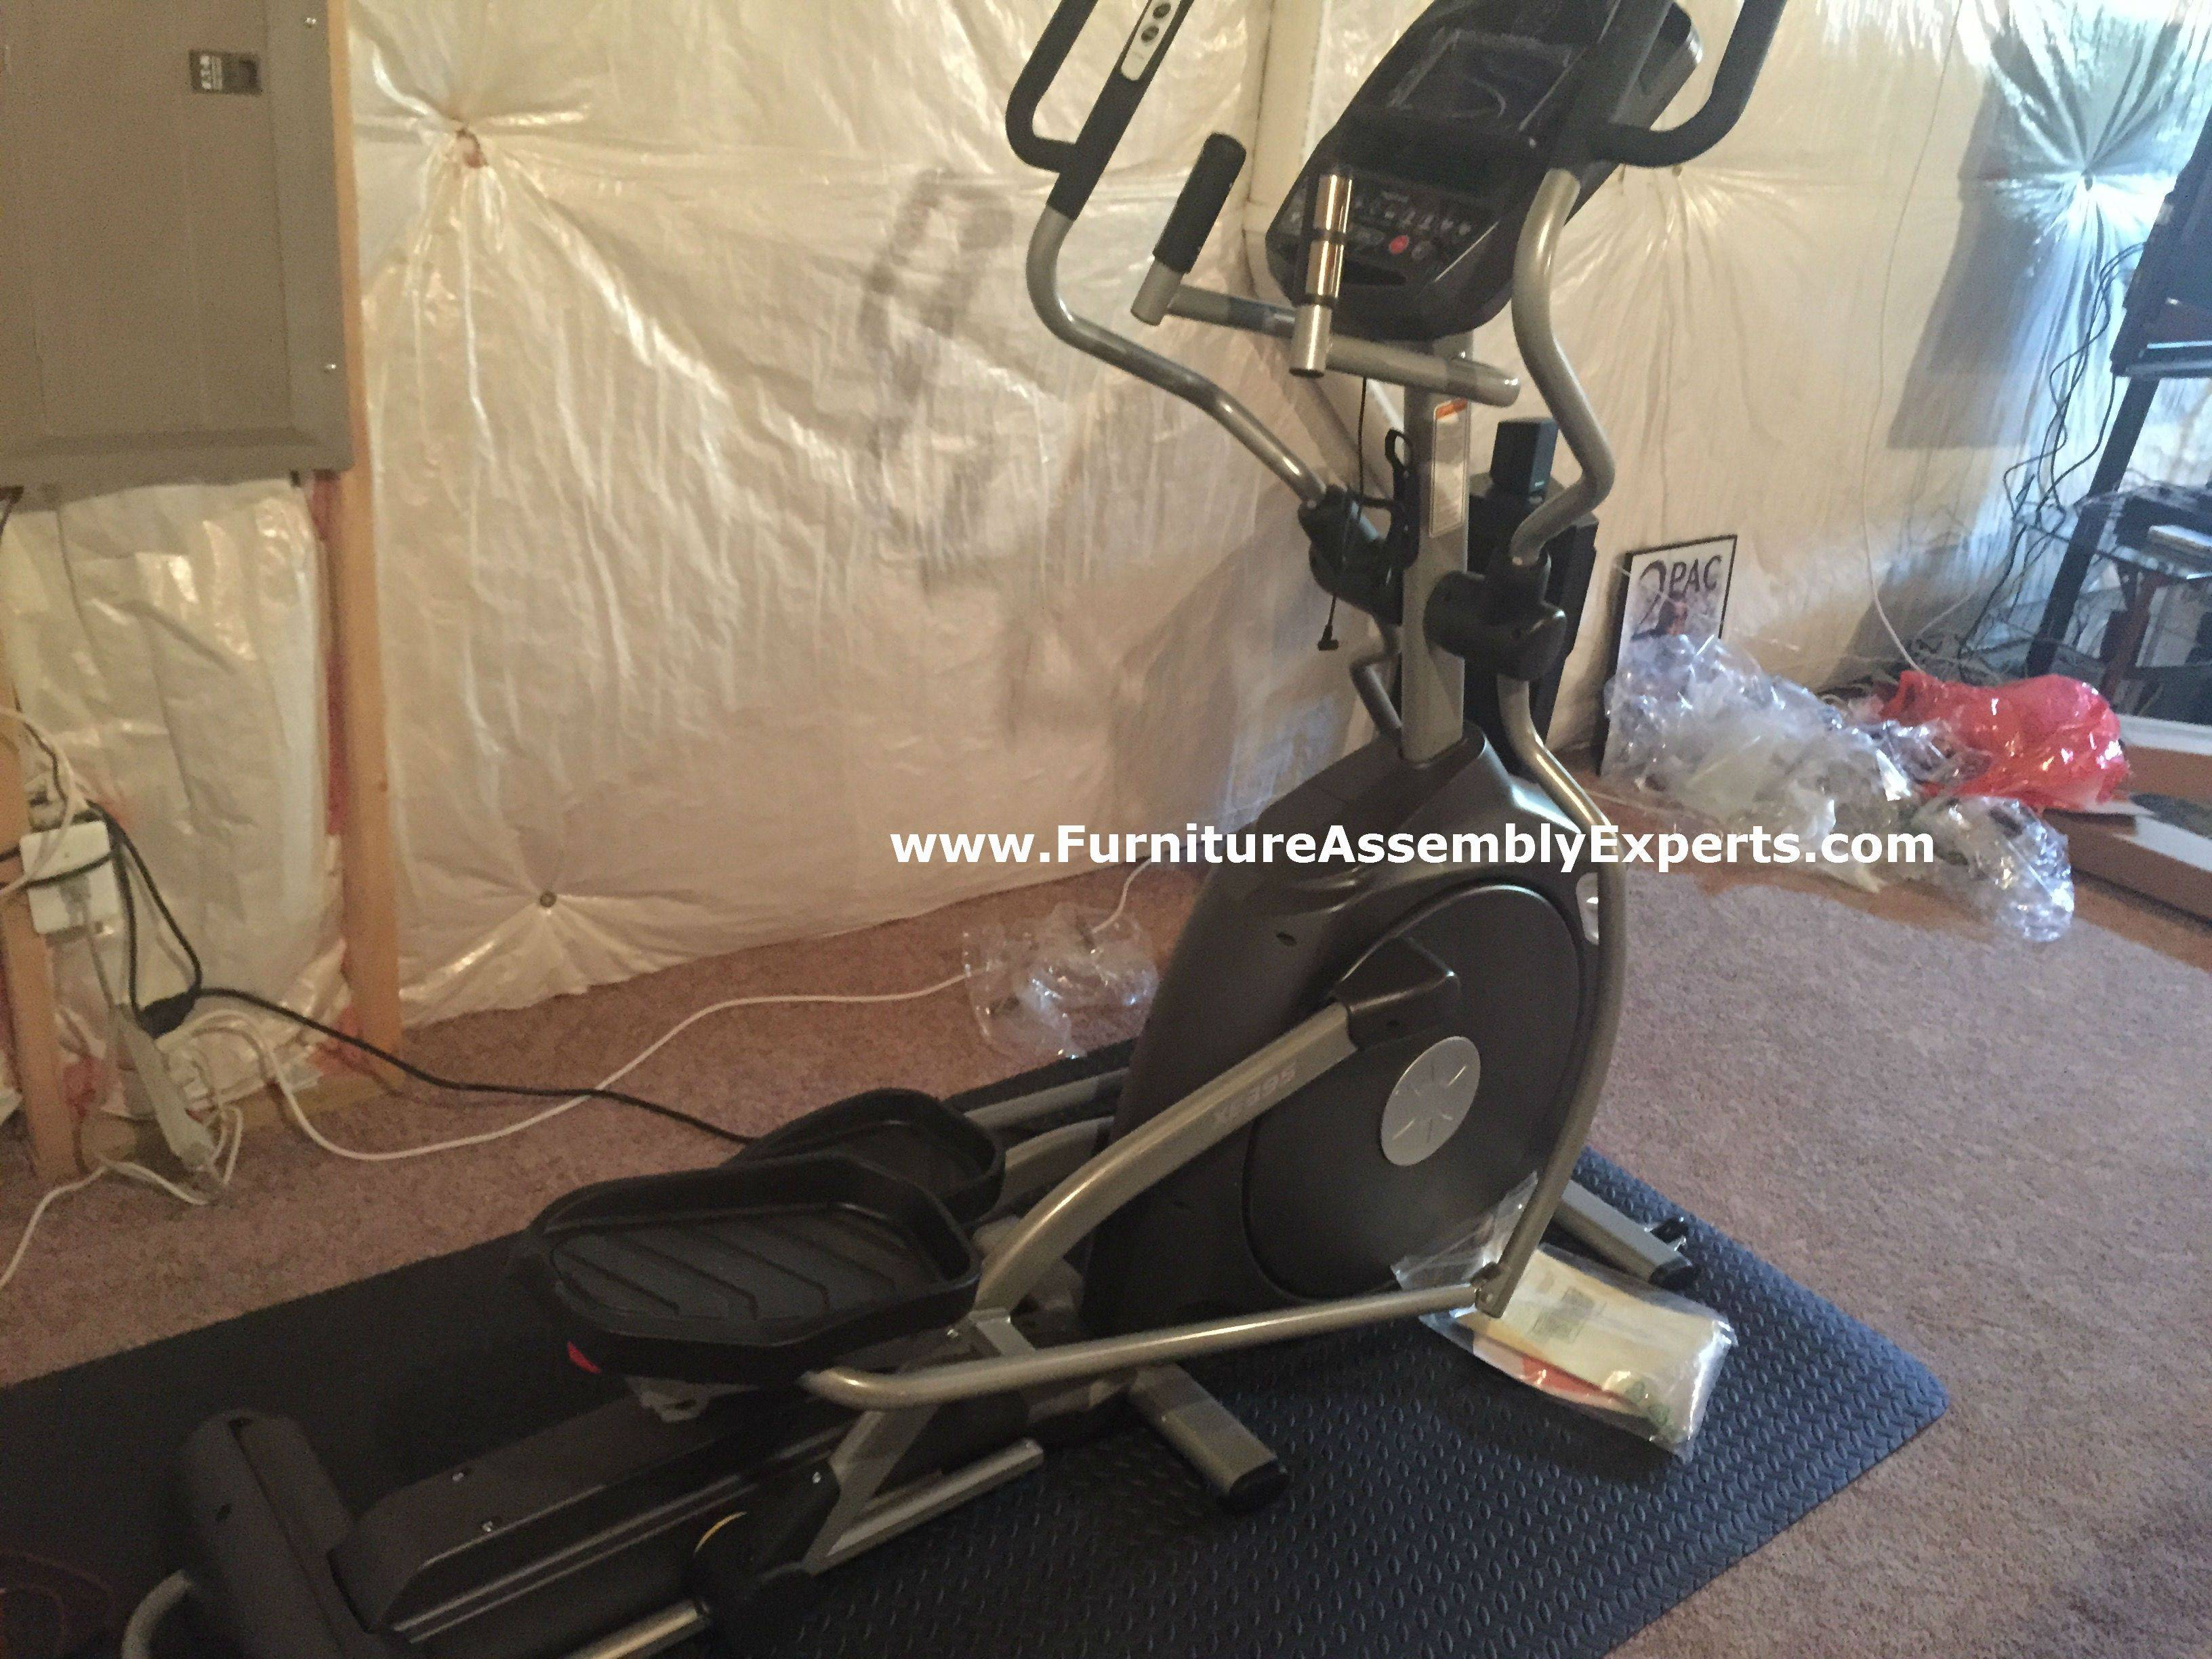 elliptical assembly service in Baltimore MD